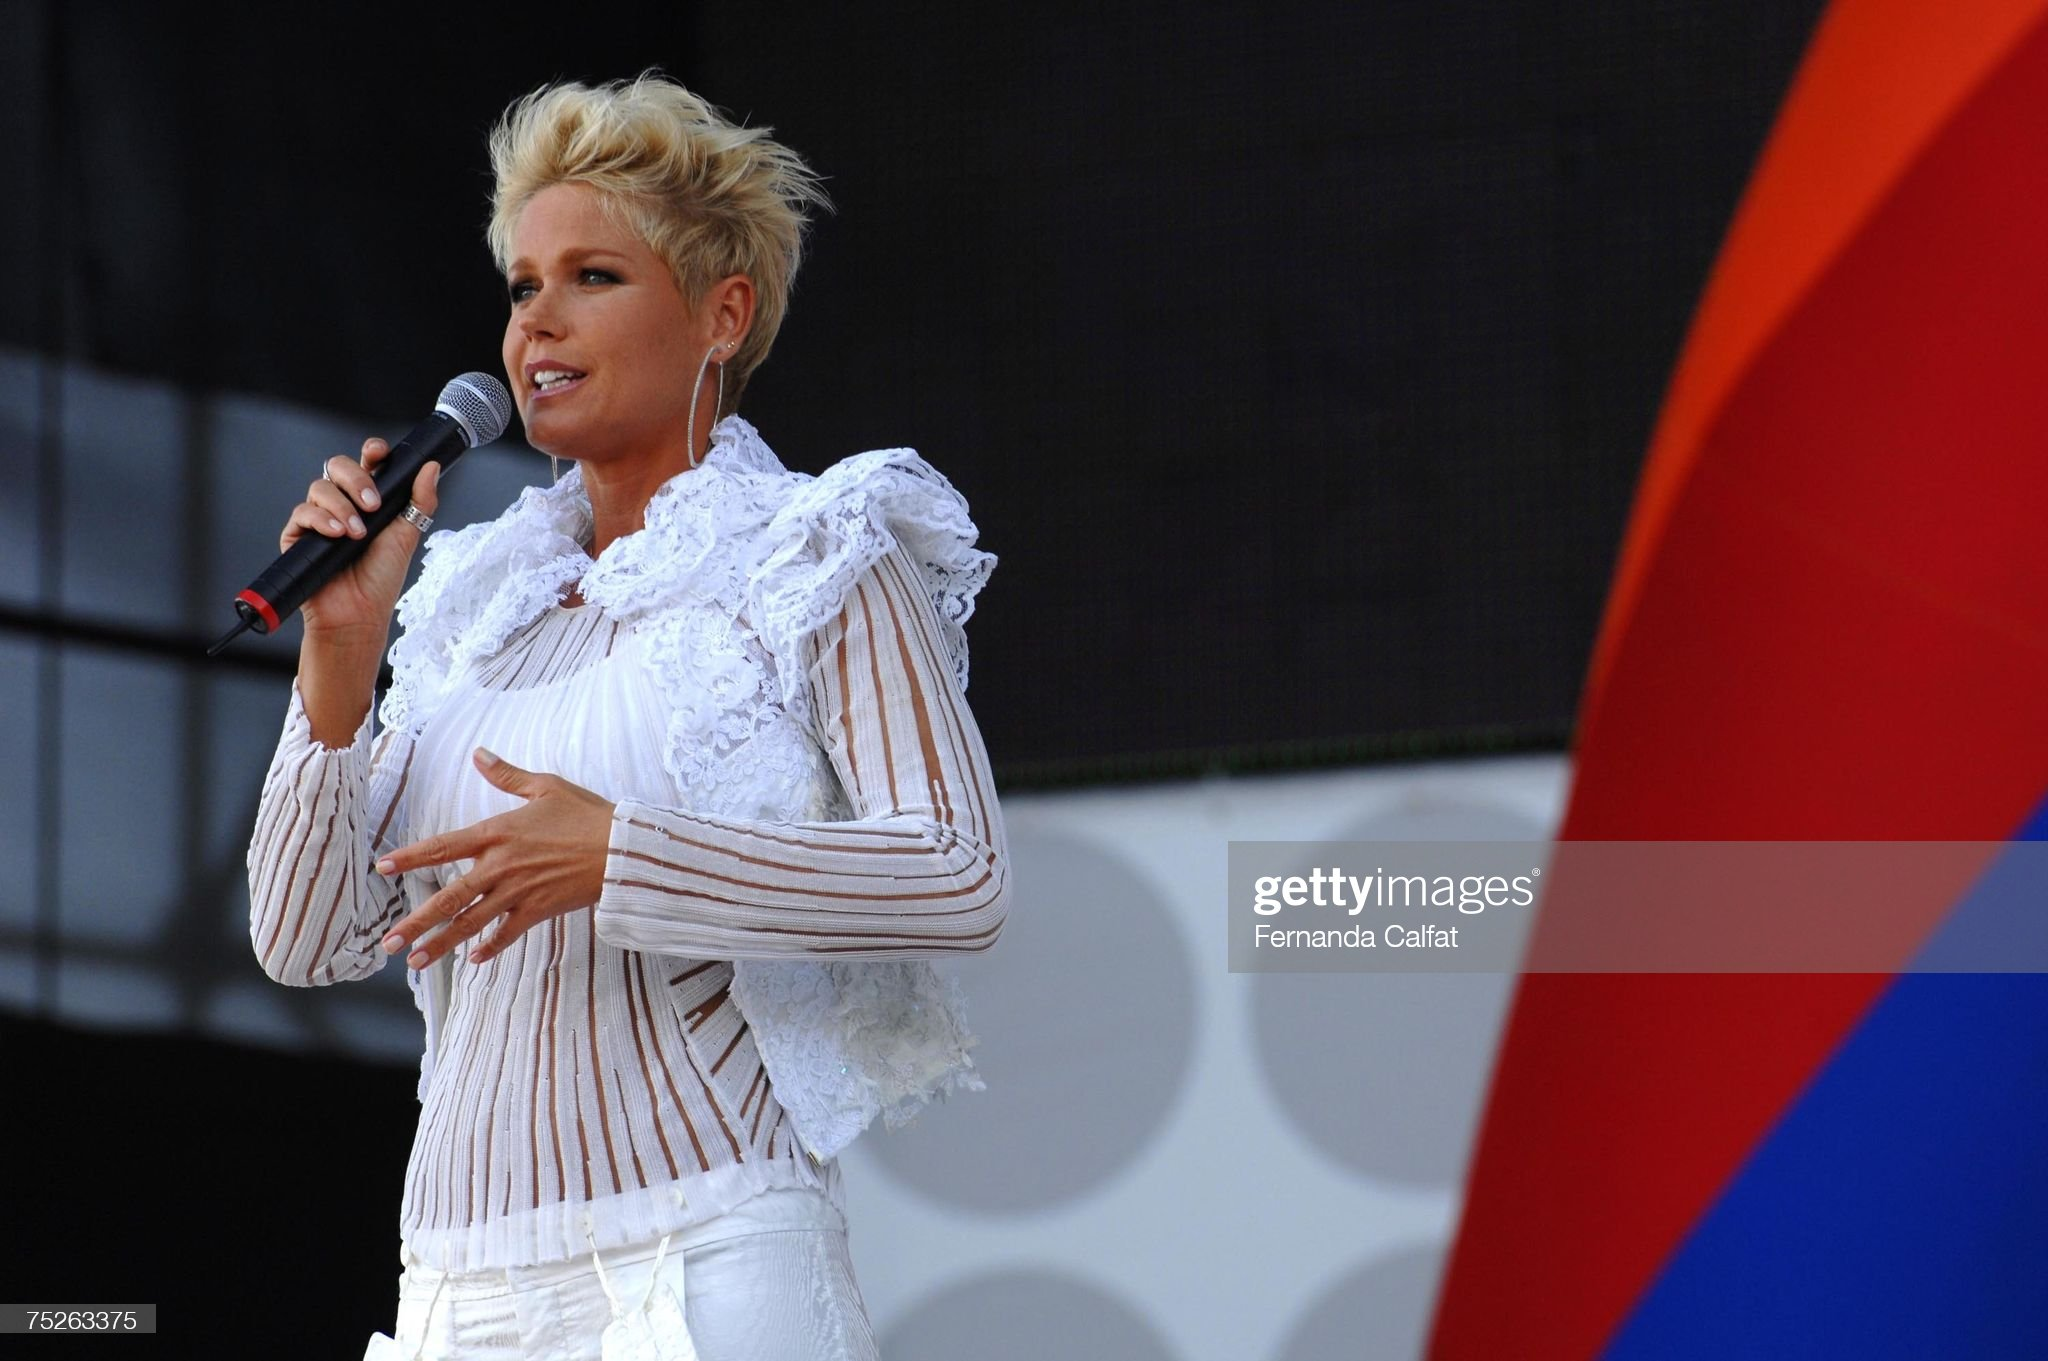 Where is Xuxa today?